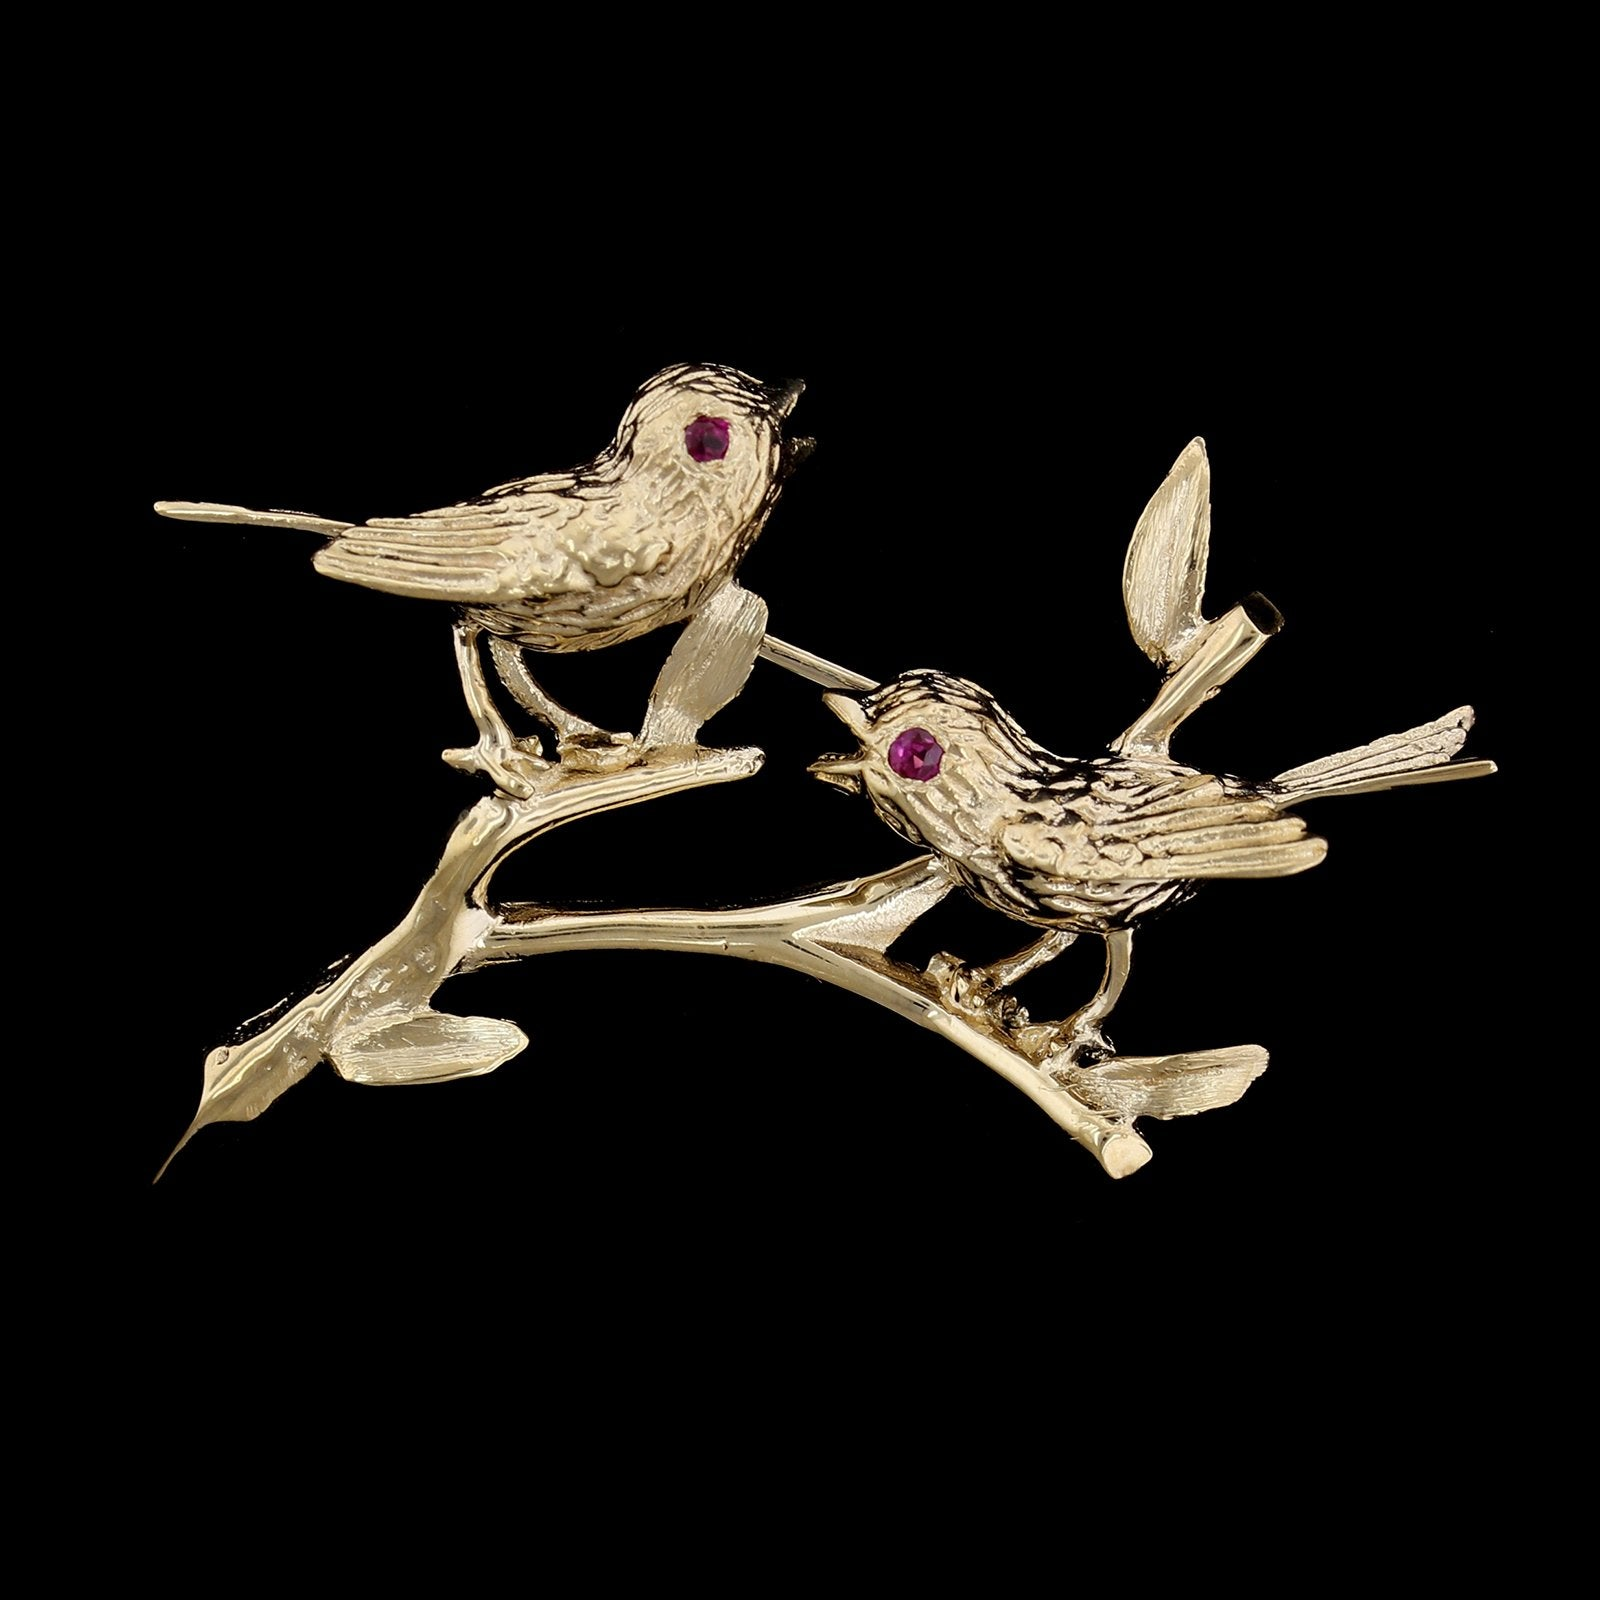 14K Yellow Gold Bird Pin